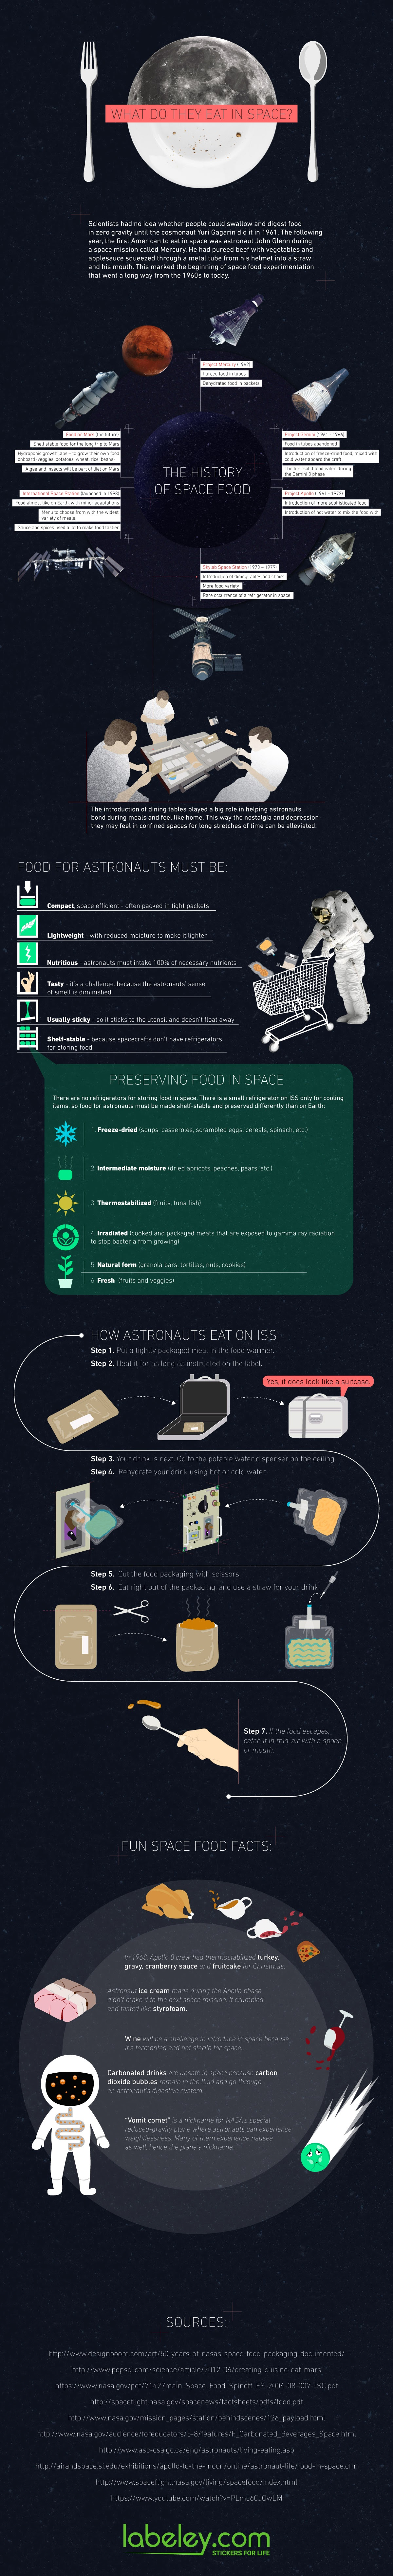 evolution-of-food-in-space-from-bland-puree-to-almost-like-on-earth-infographic